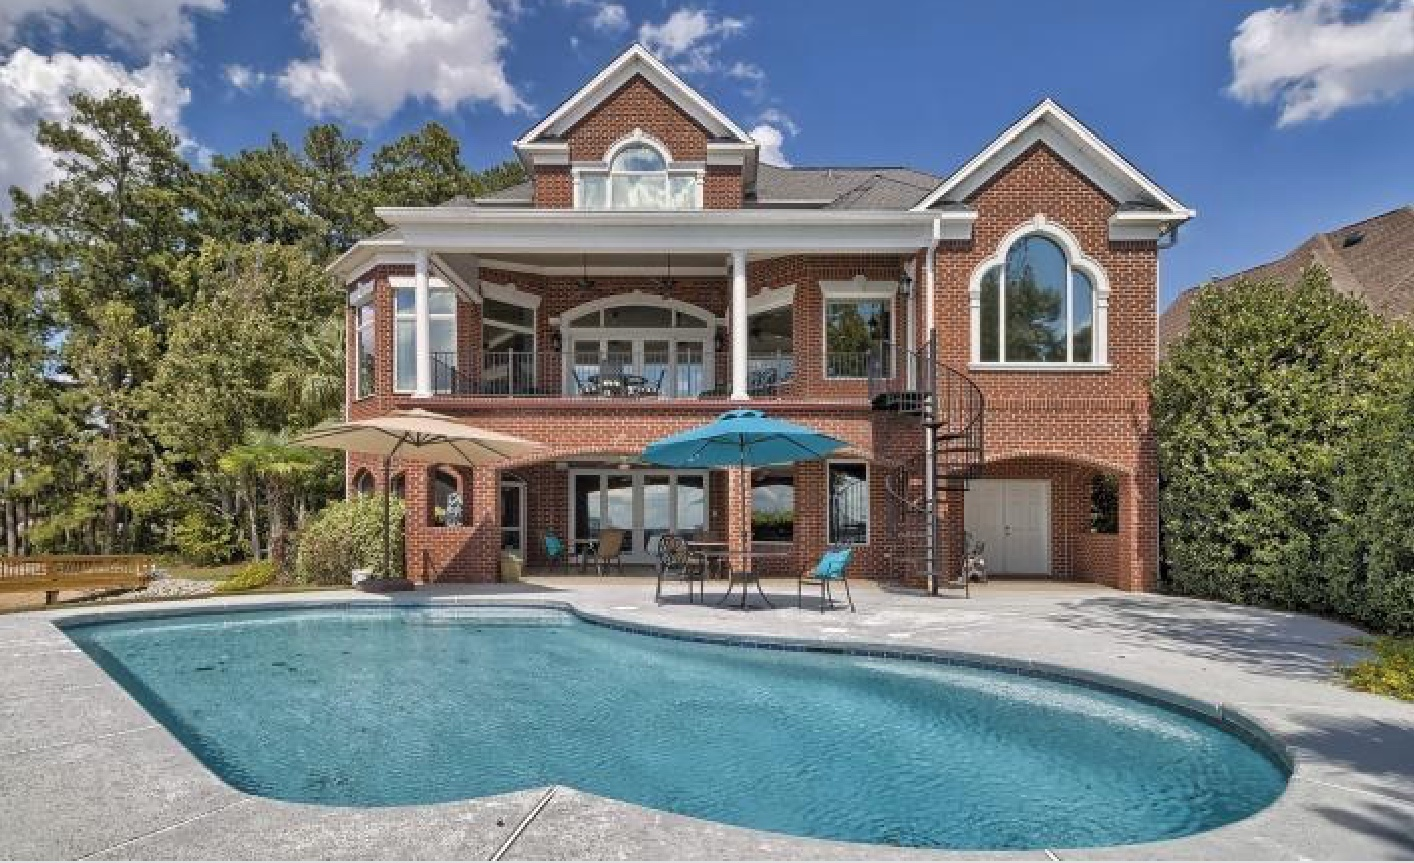 Most Expensive Chapin Home Sold $1.395 million - 452 Lake Estate Drive